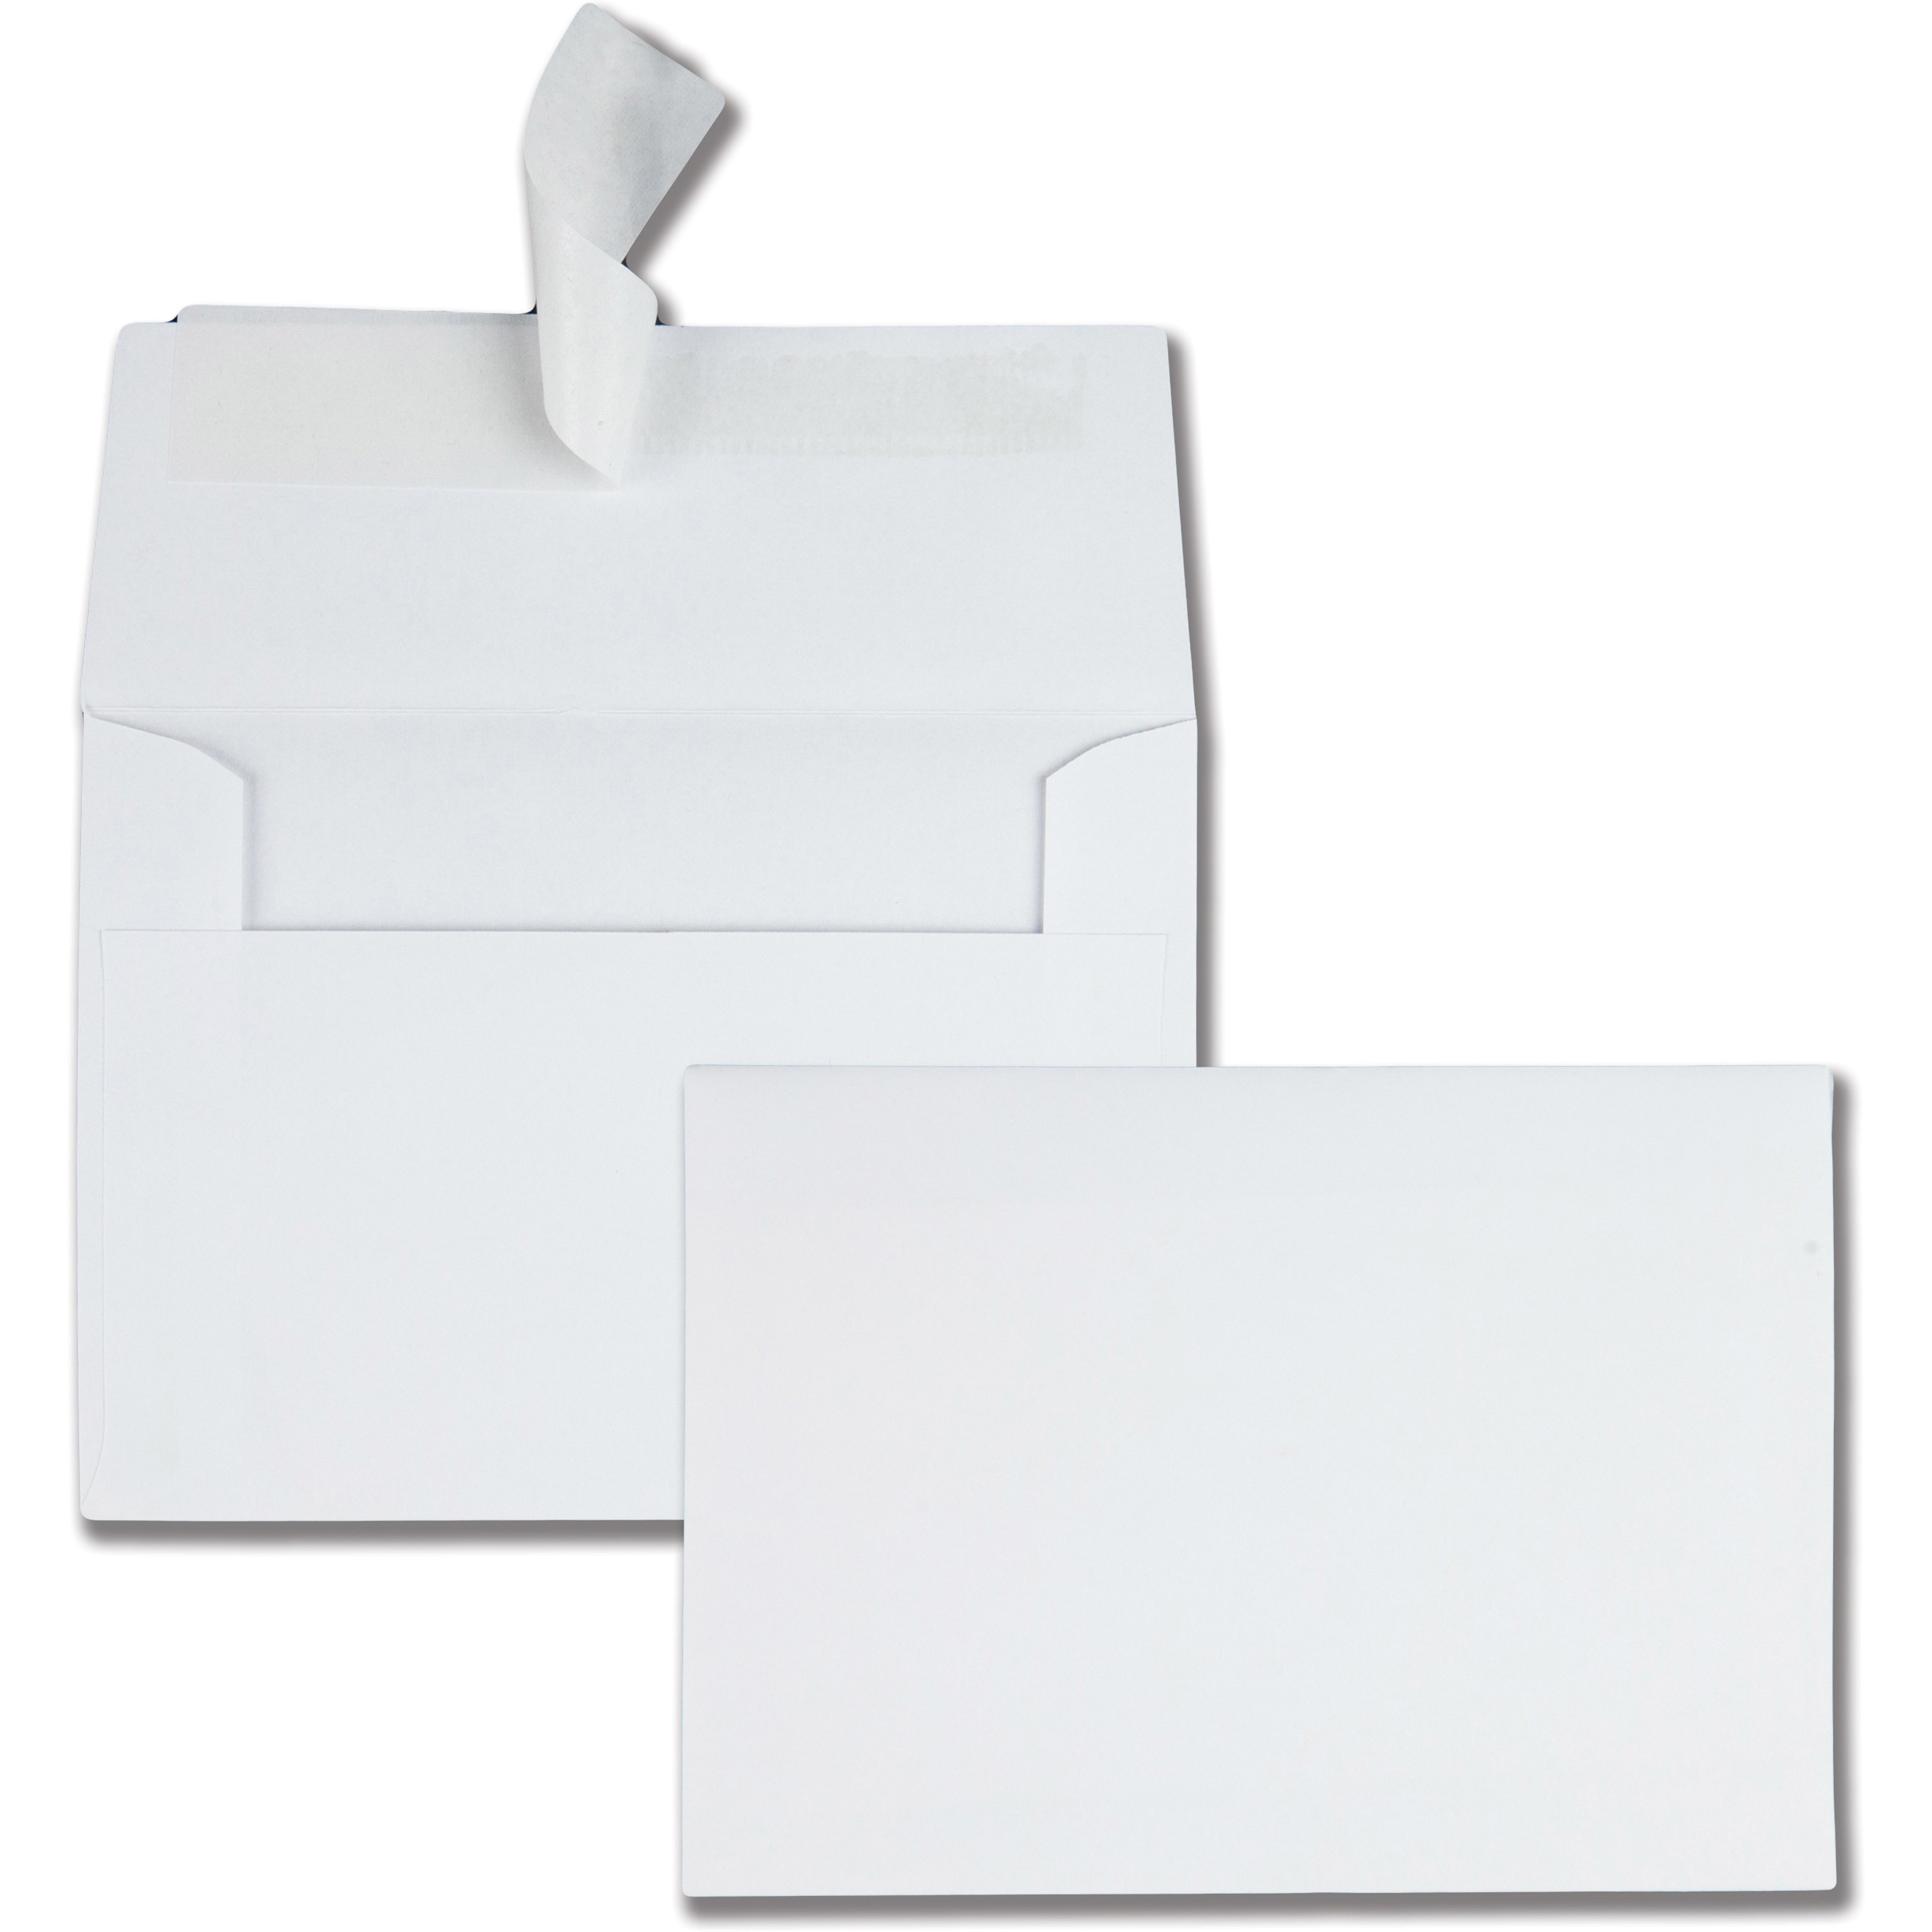 Quality Park Redi-Strip Specialty Paper Envelopes